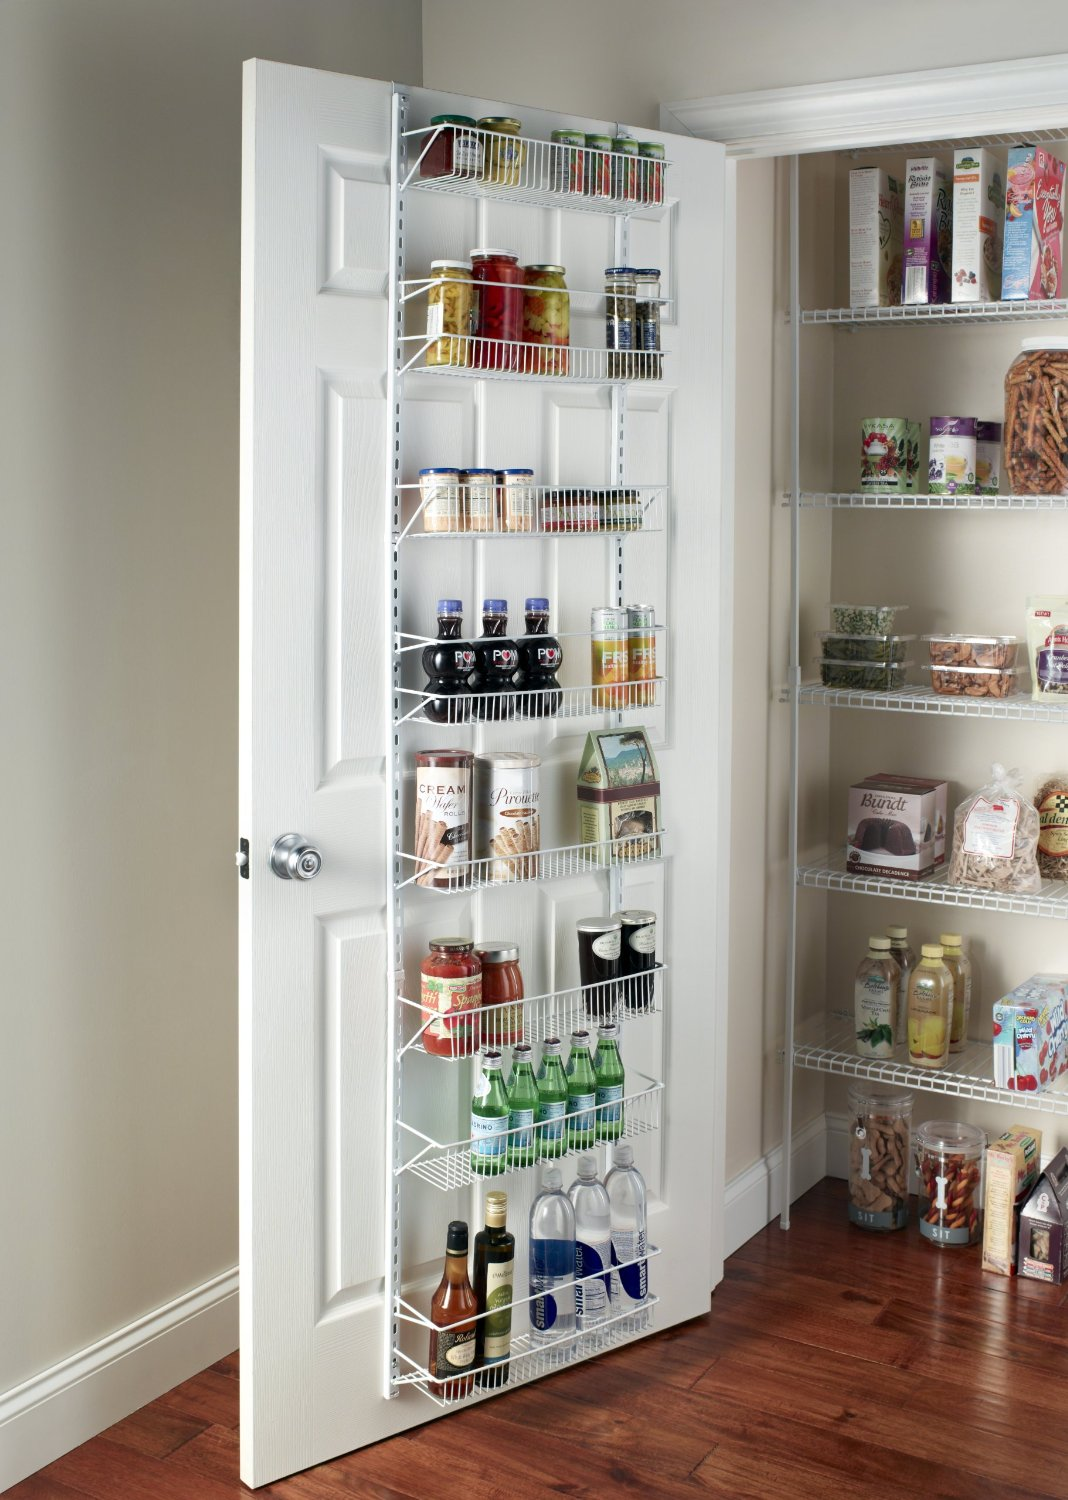 Organise My Home Closetmaid Kitchen Pantry Shelving